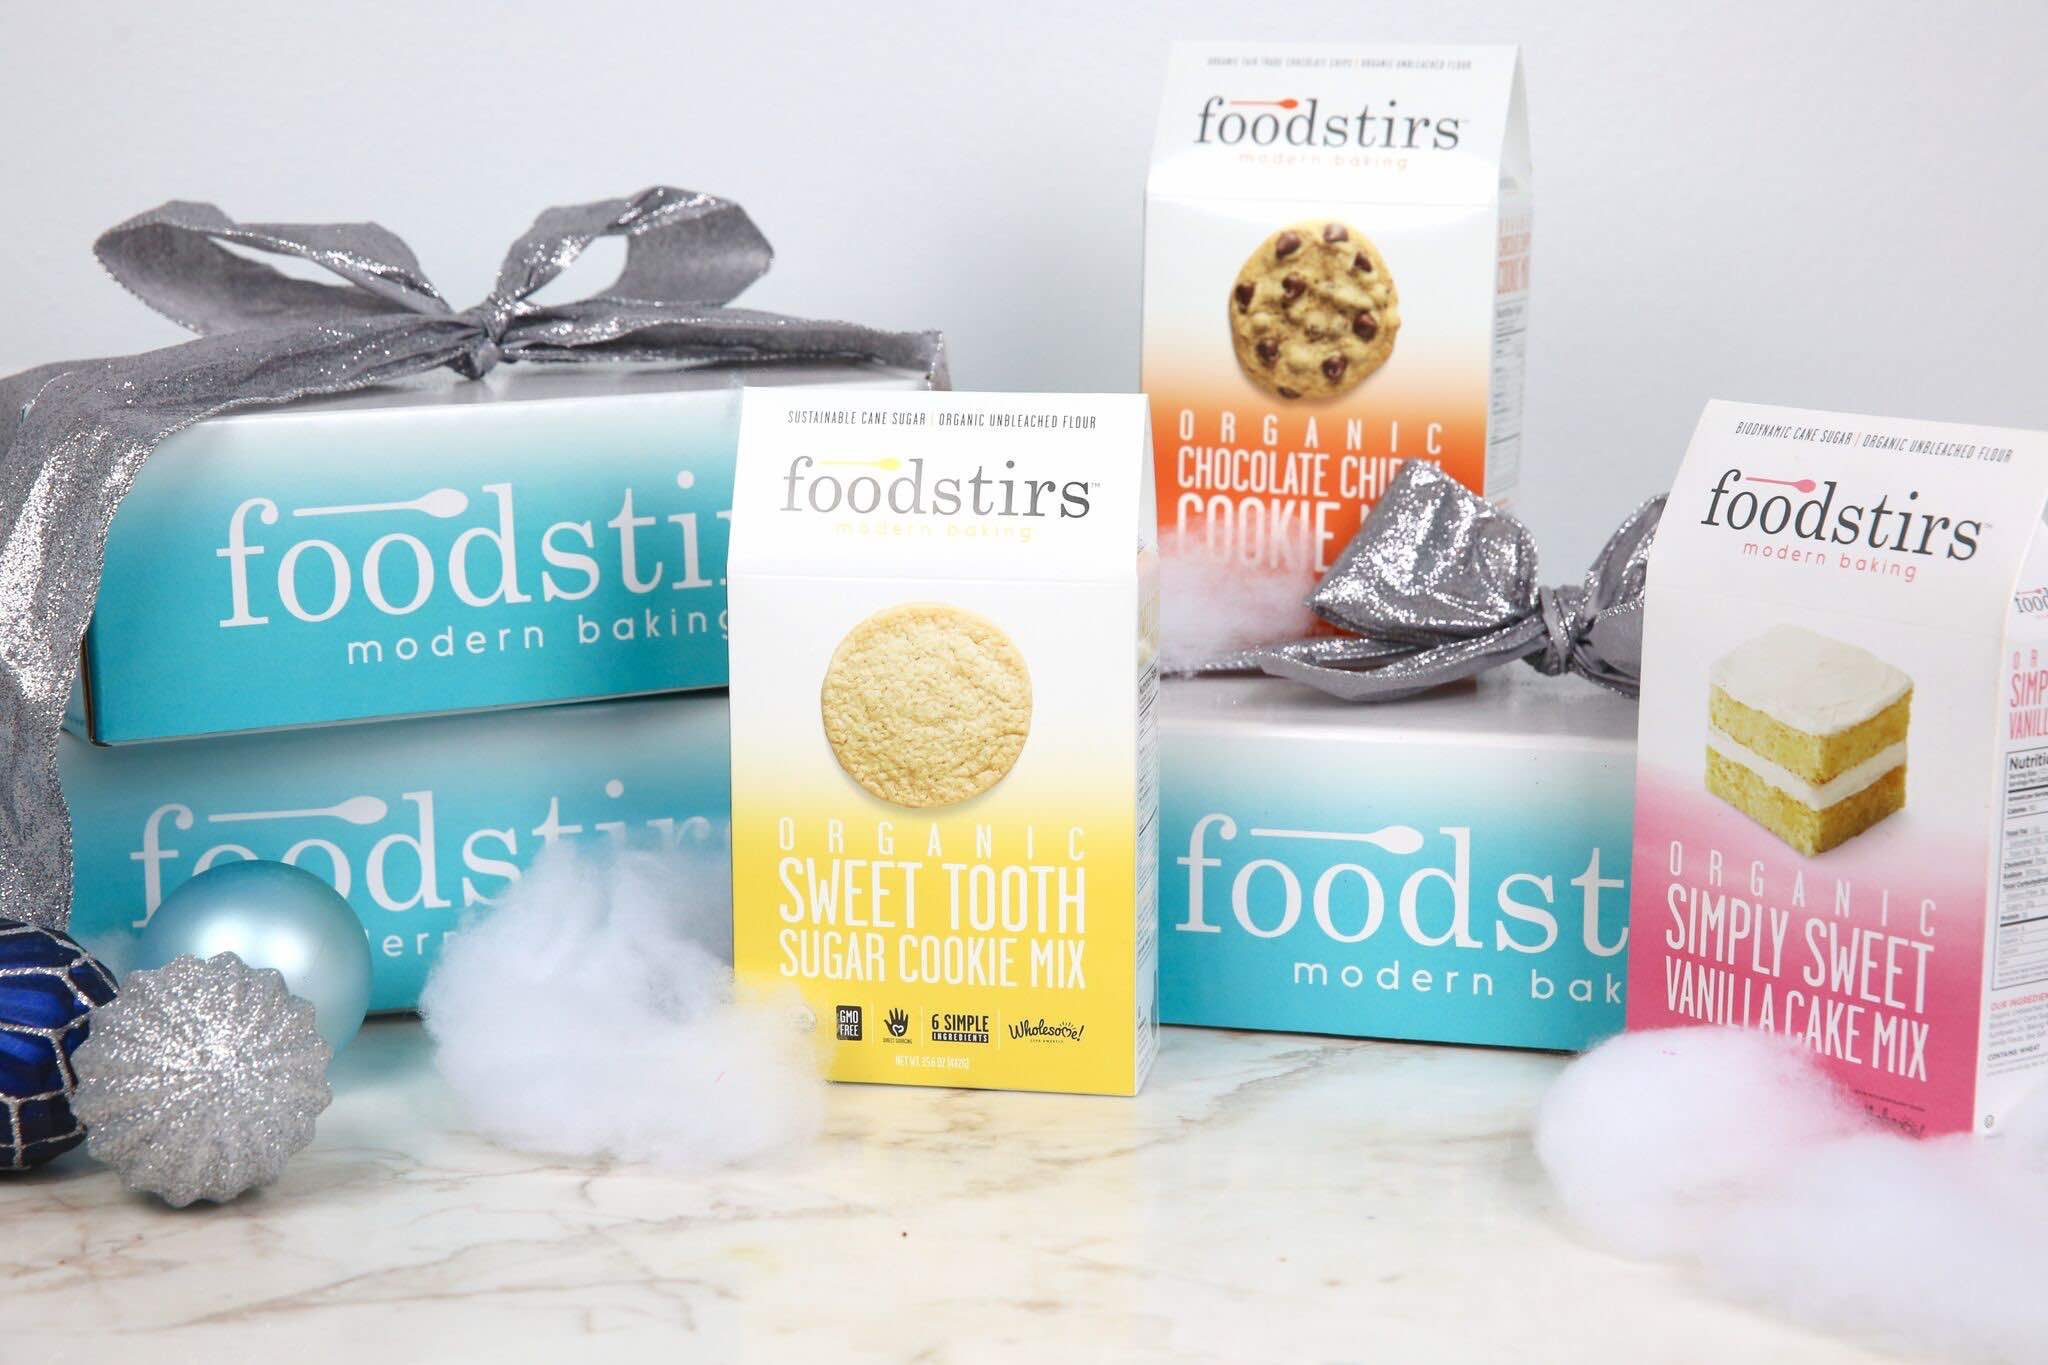 foodstirs quick scratch baking mixes